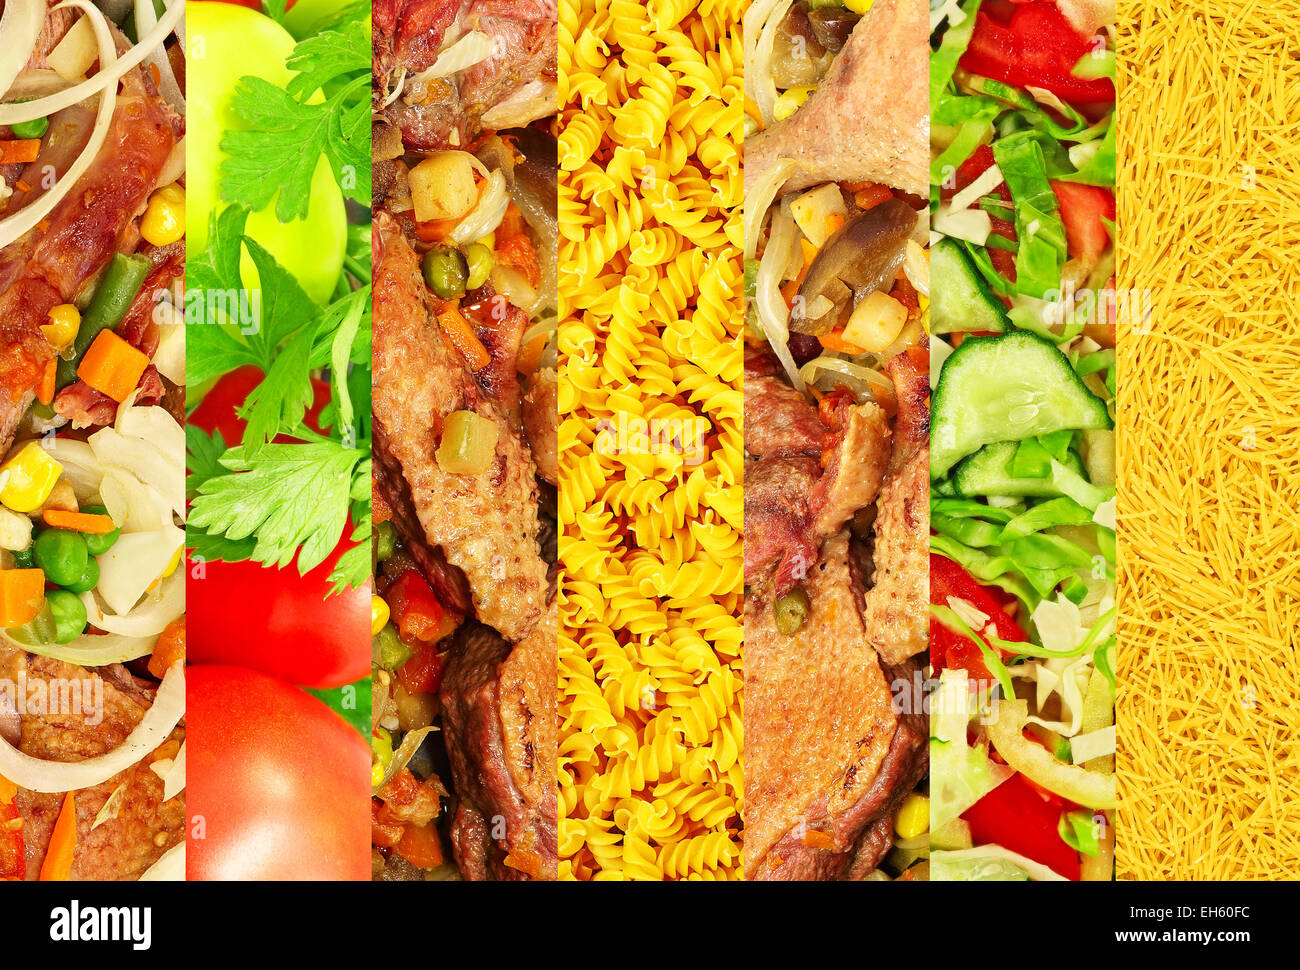 Food collage made from appetizing meat and vegetable images . - Stock Image